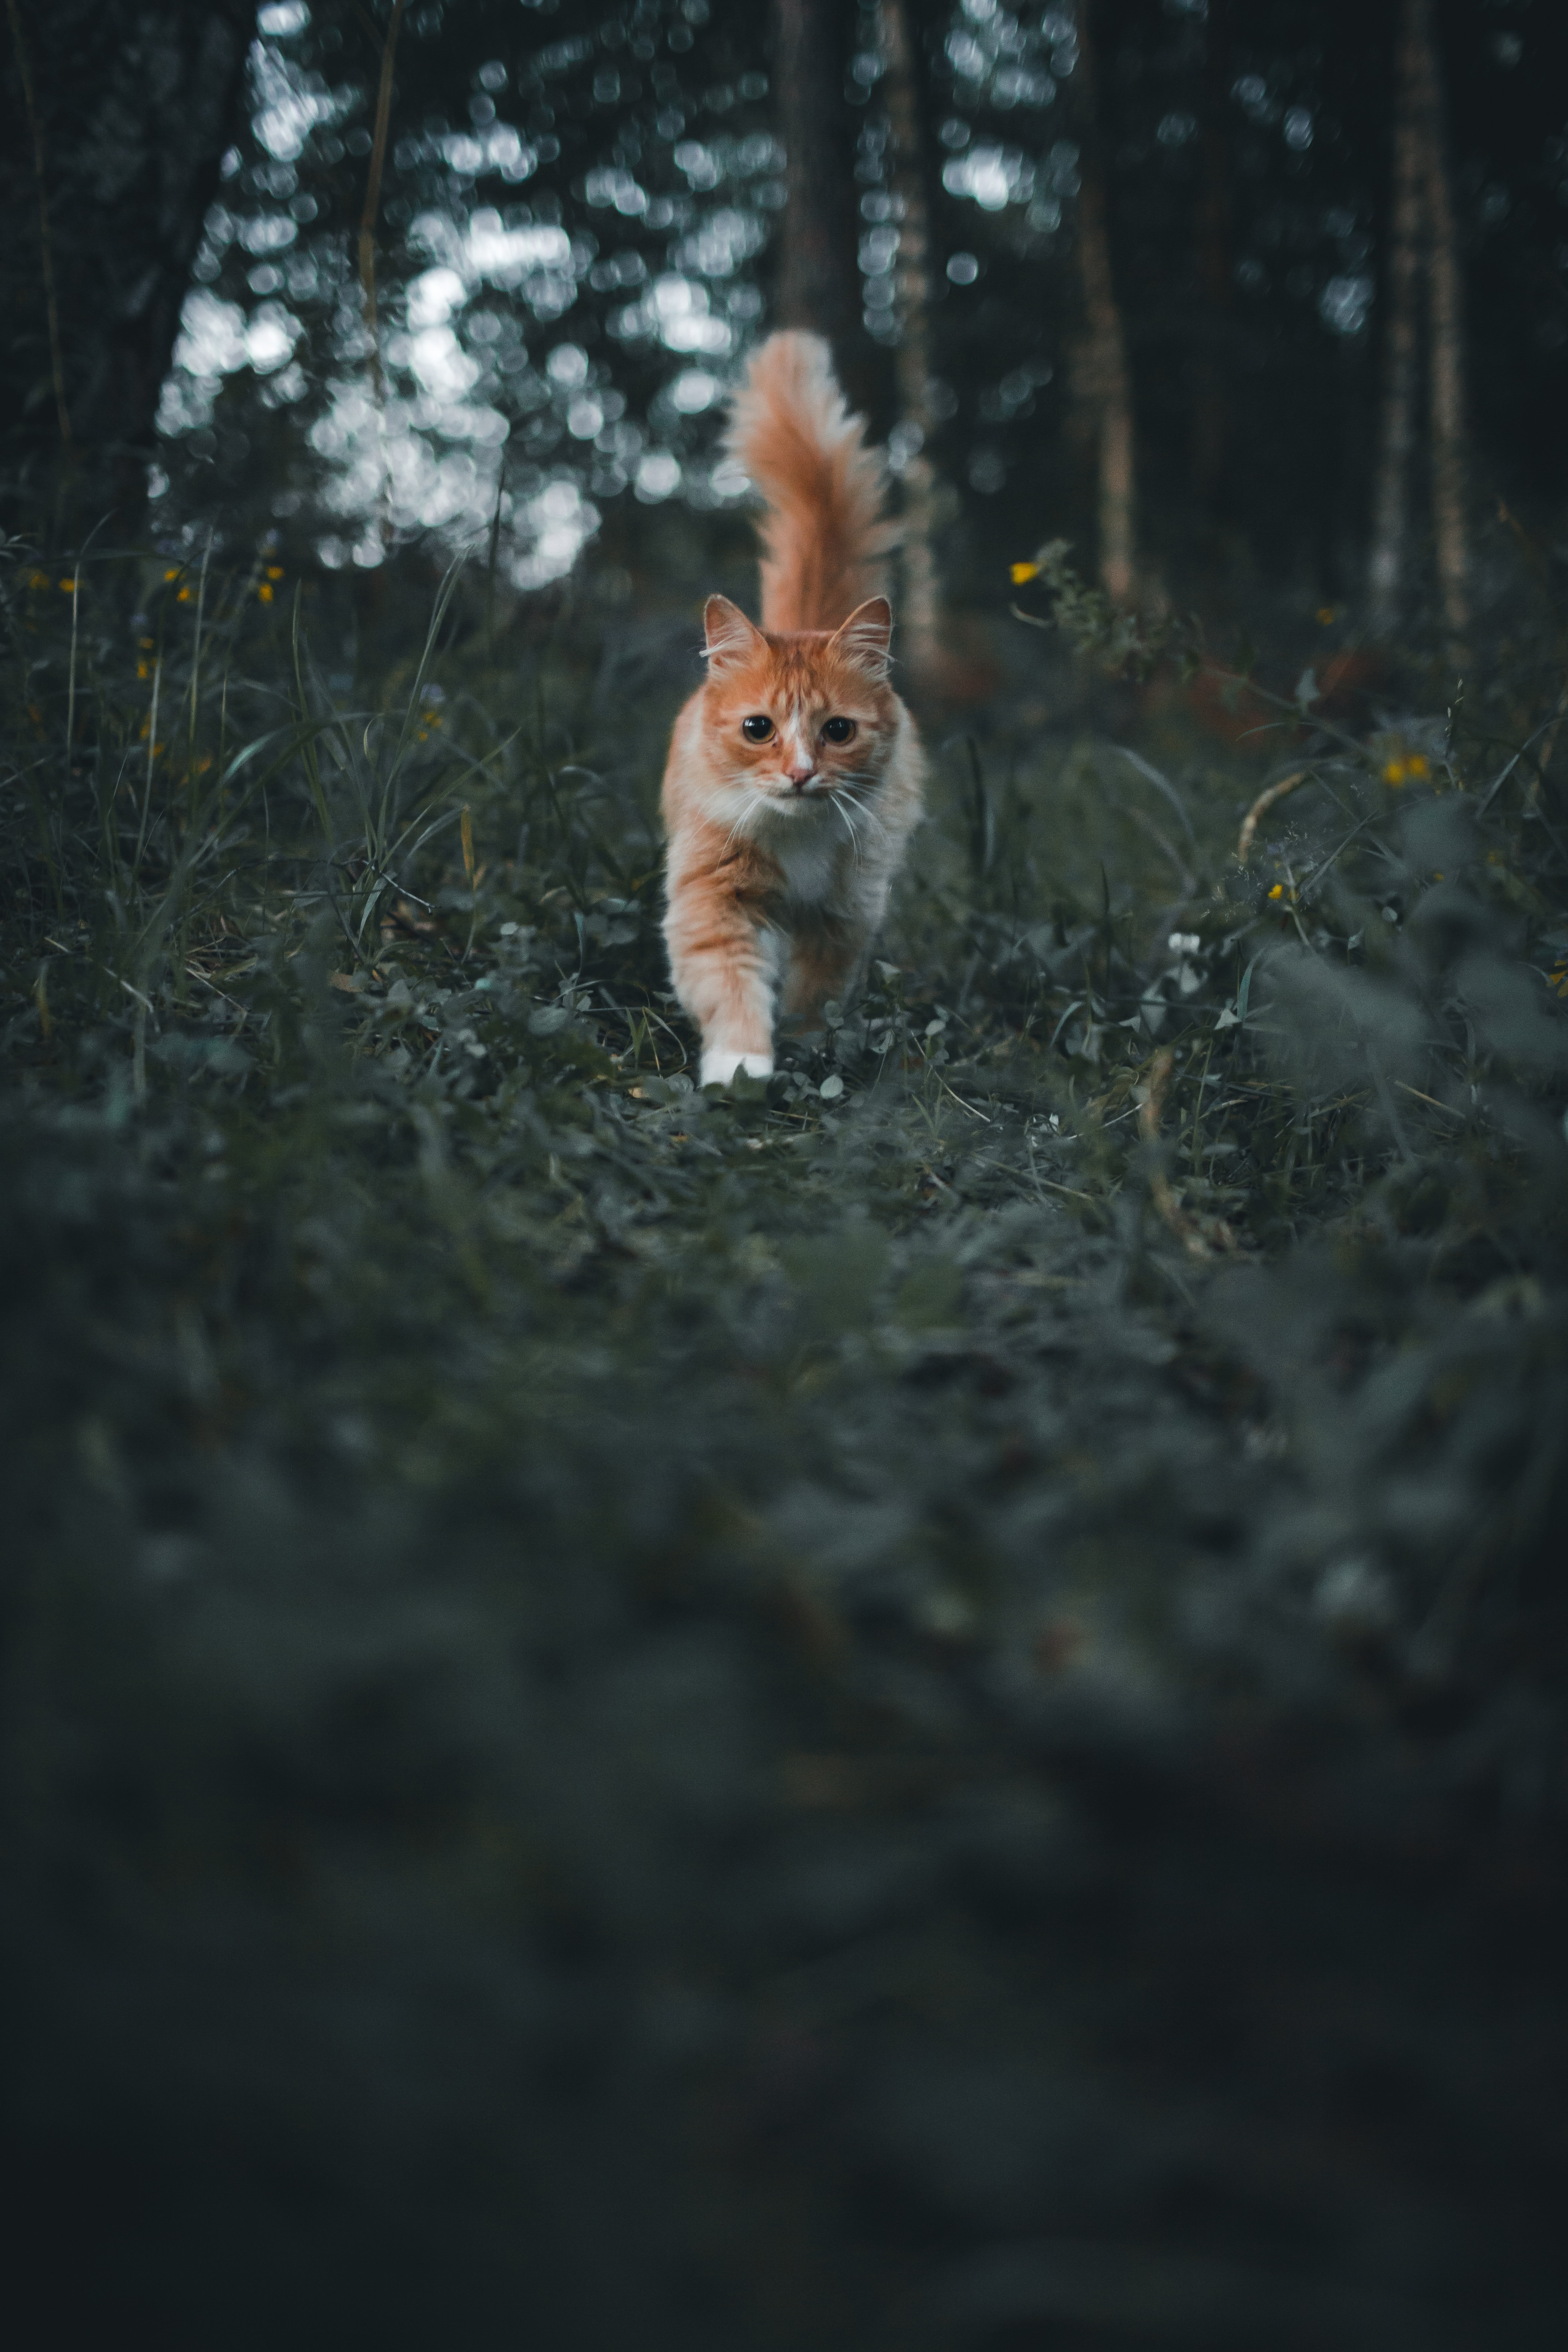 117003 download wallpaper Animals, Cat, Pet, Fluffy, Nice, Sweetheart, Grass screensavers and pictures for free